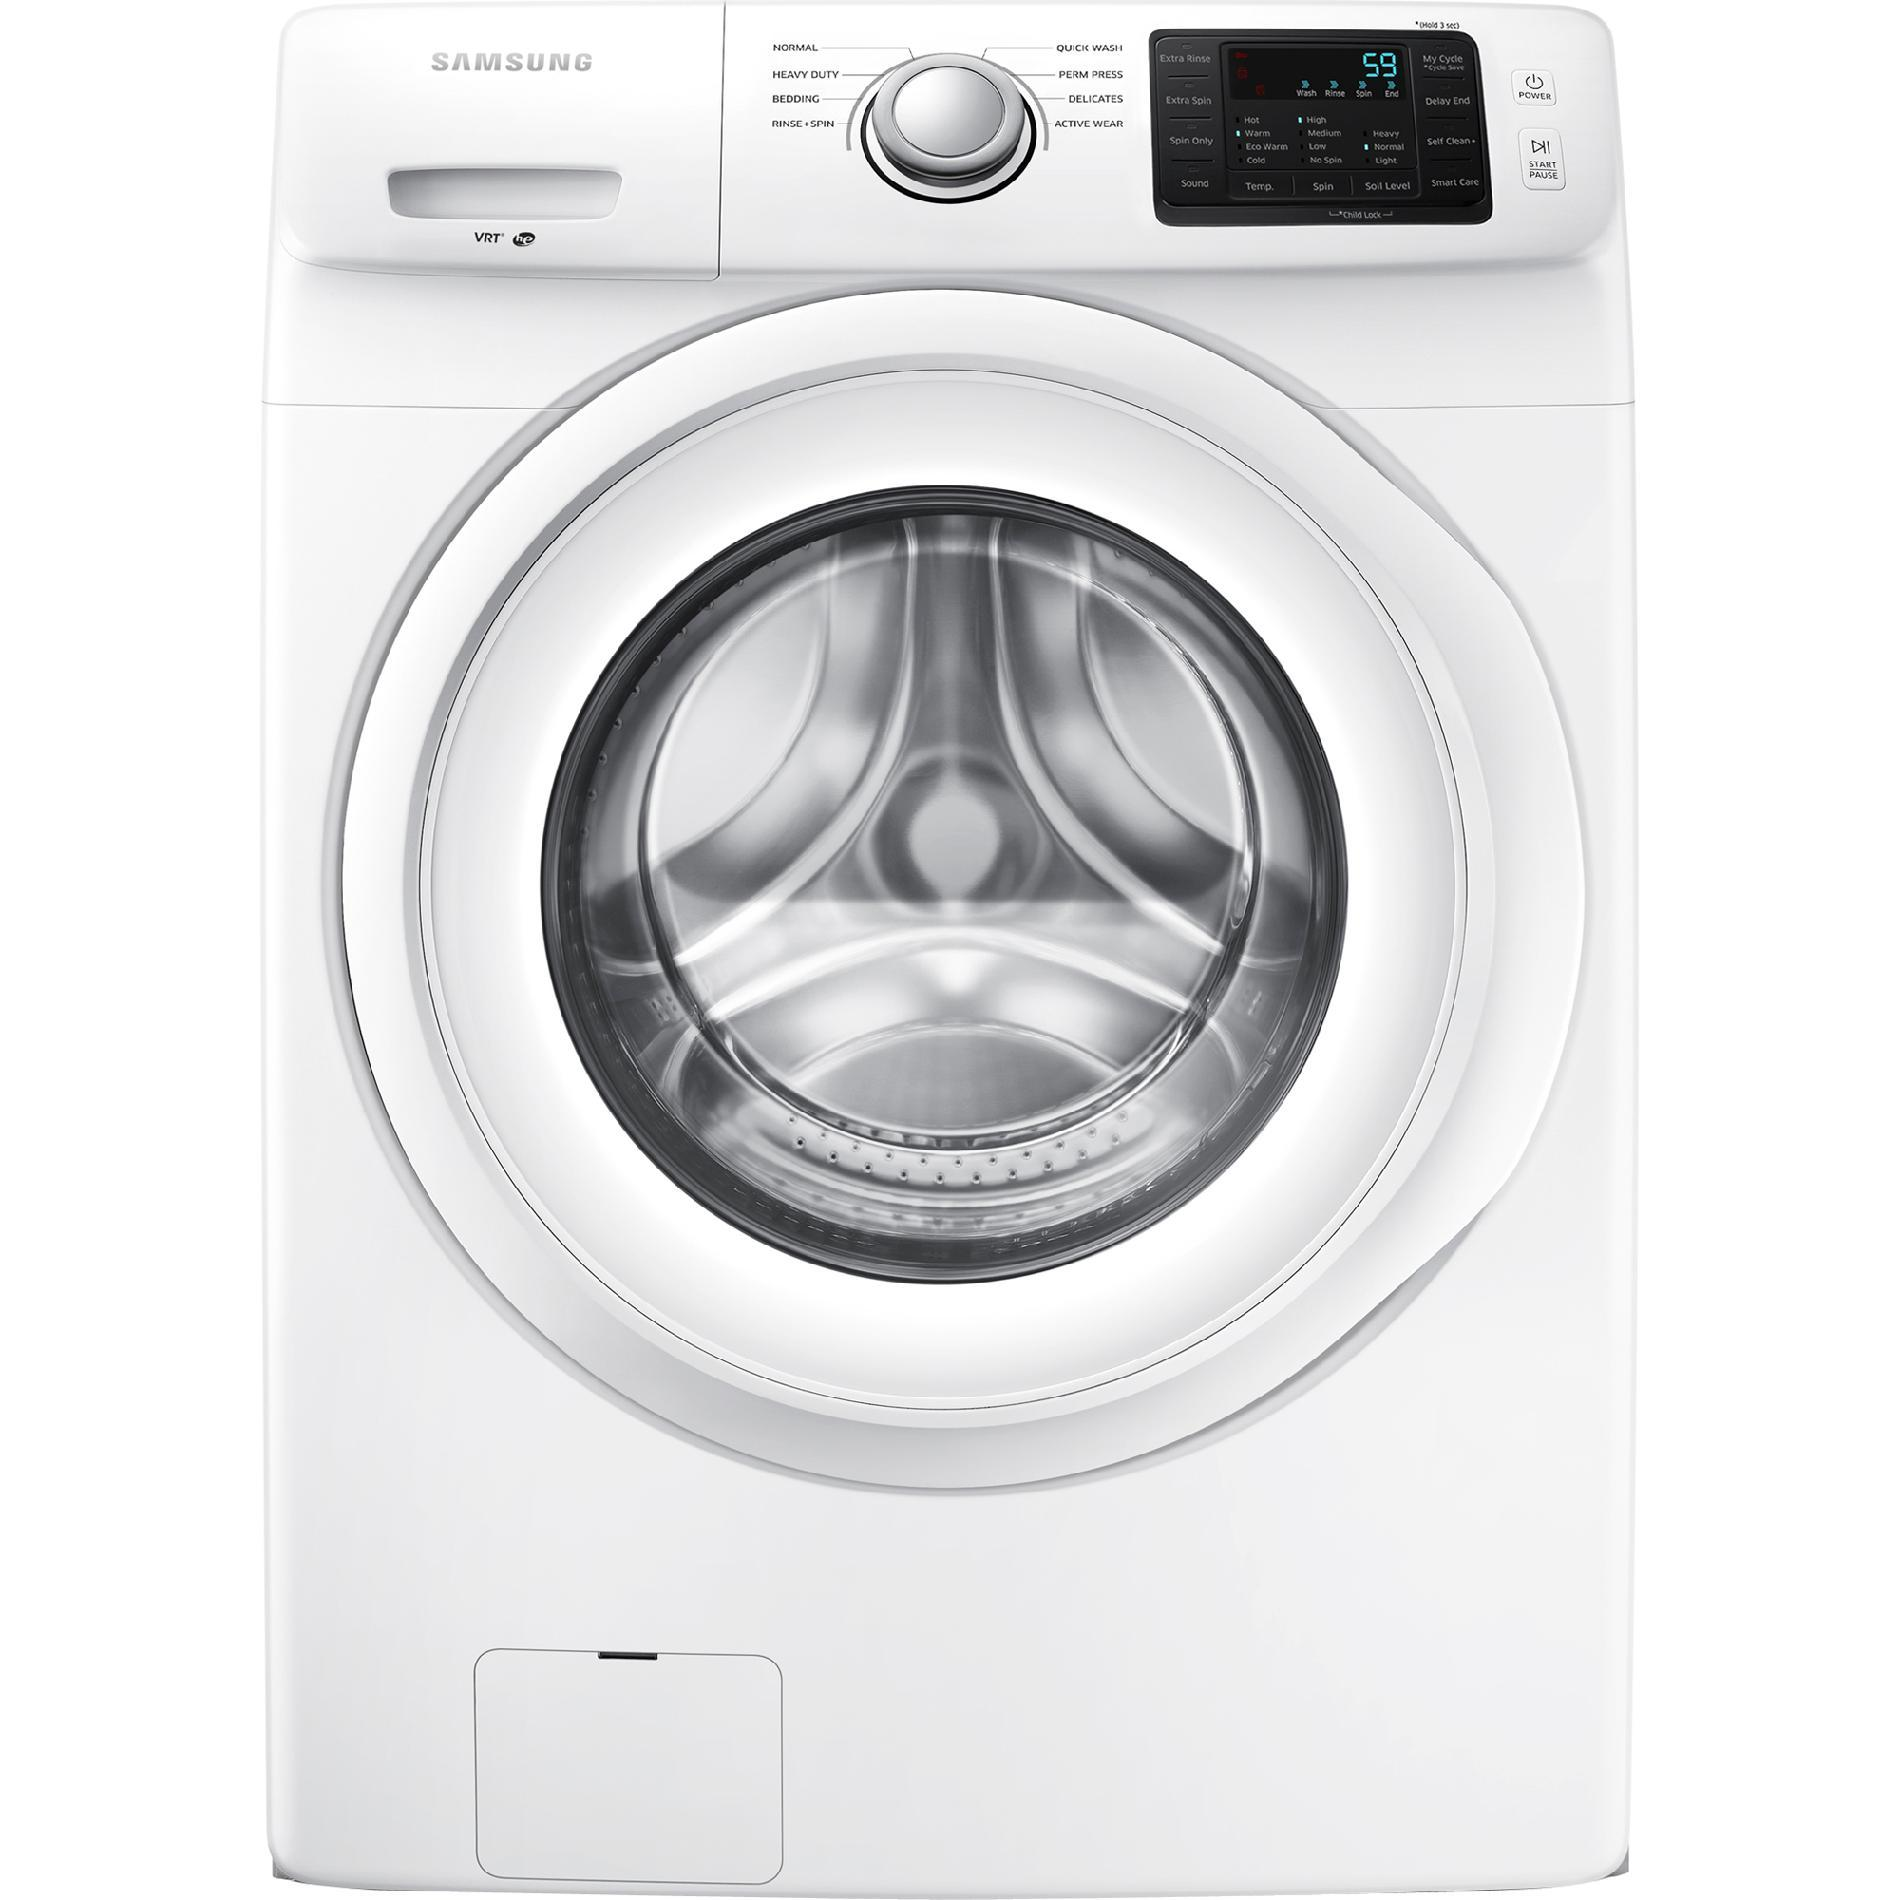 Samsung WF42H5000AW 4.2 cu. ft. Front-Load Washer - White